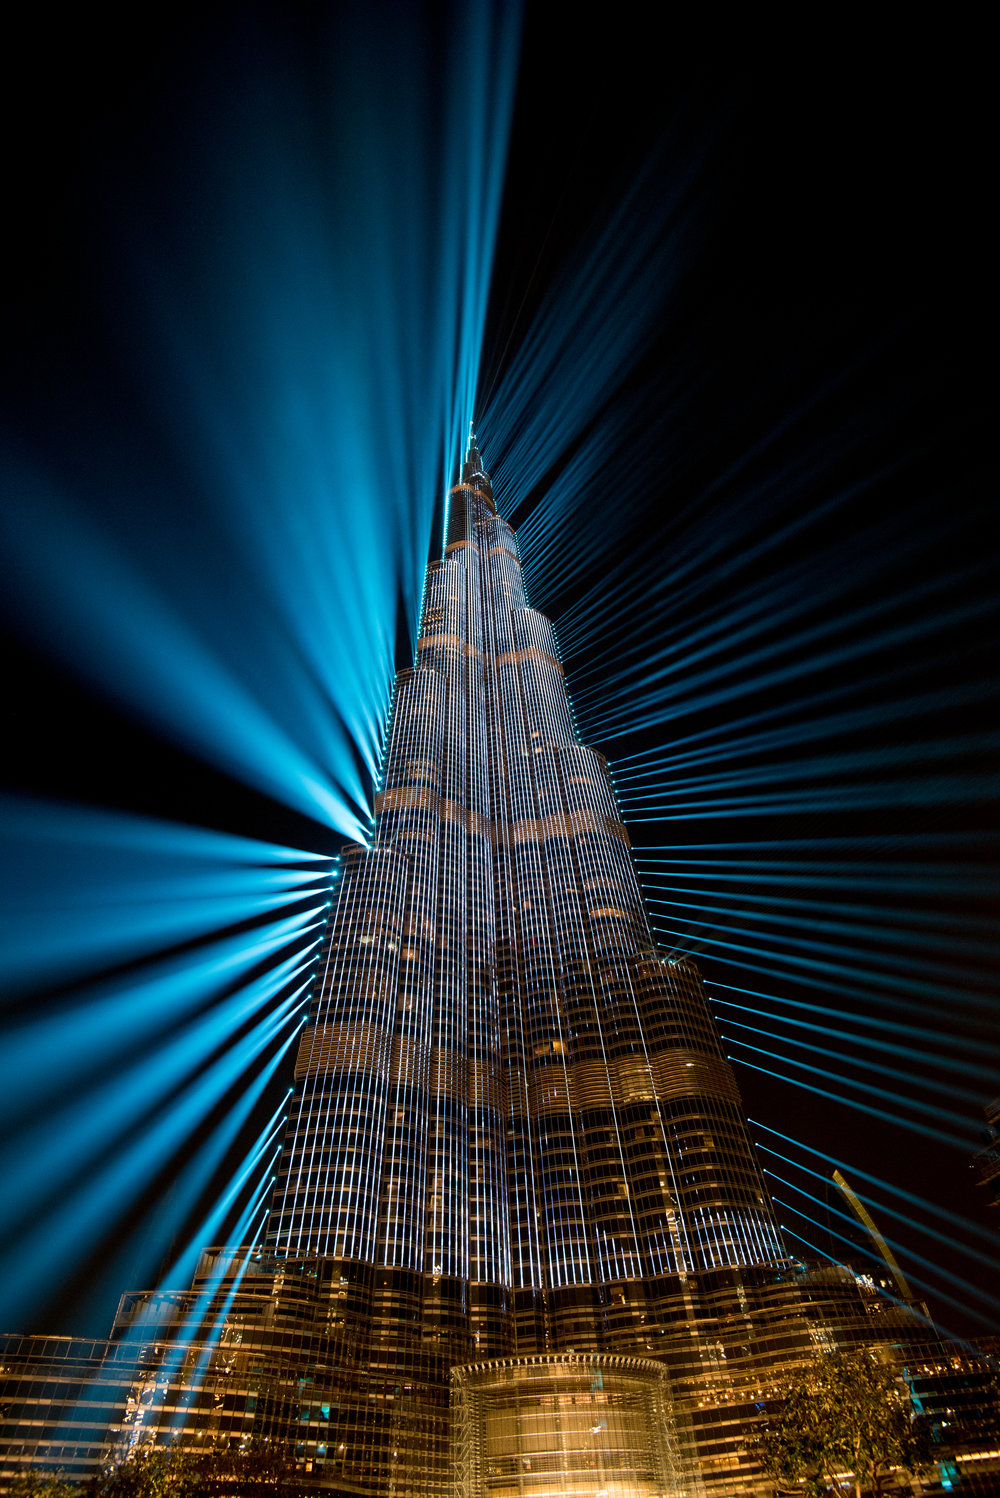 At the Top Burj Khalifa - Visit the Burj Khalifa the world's tallest building. It's also one of the top three tourist destinations for selfies.